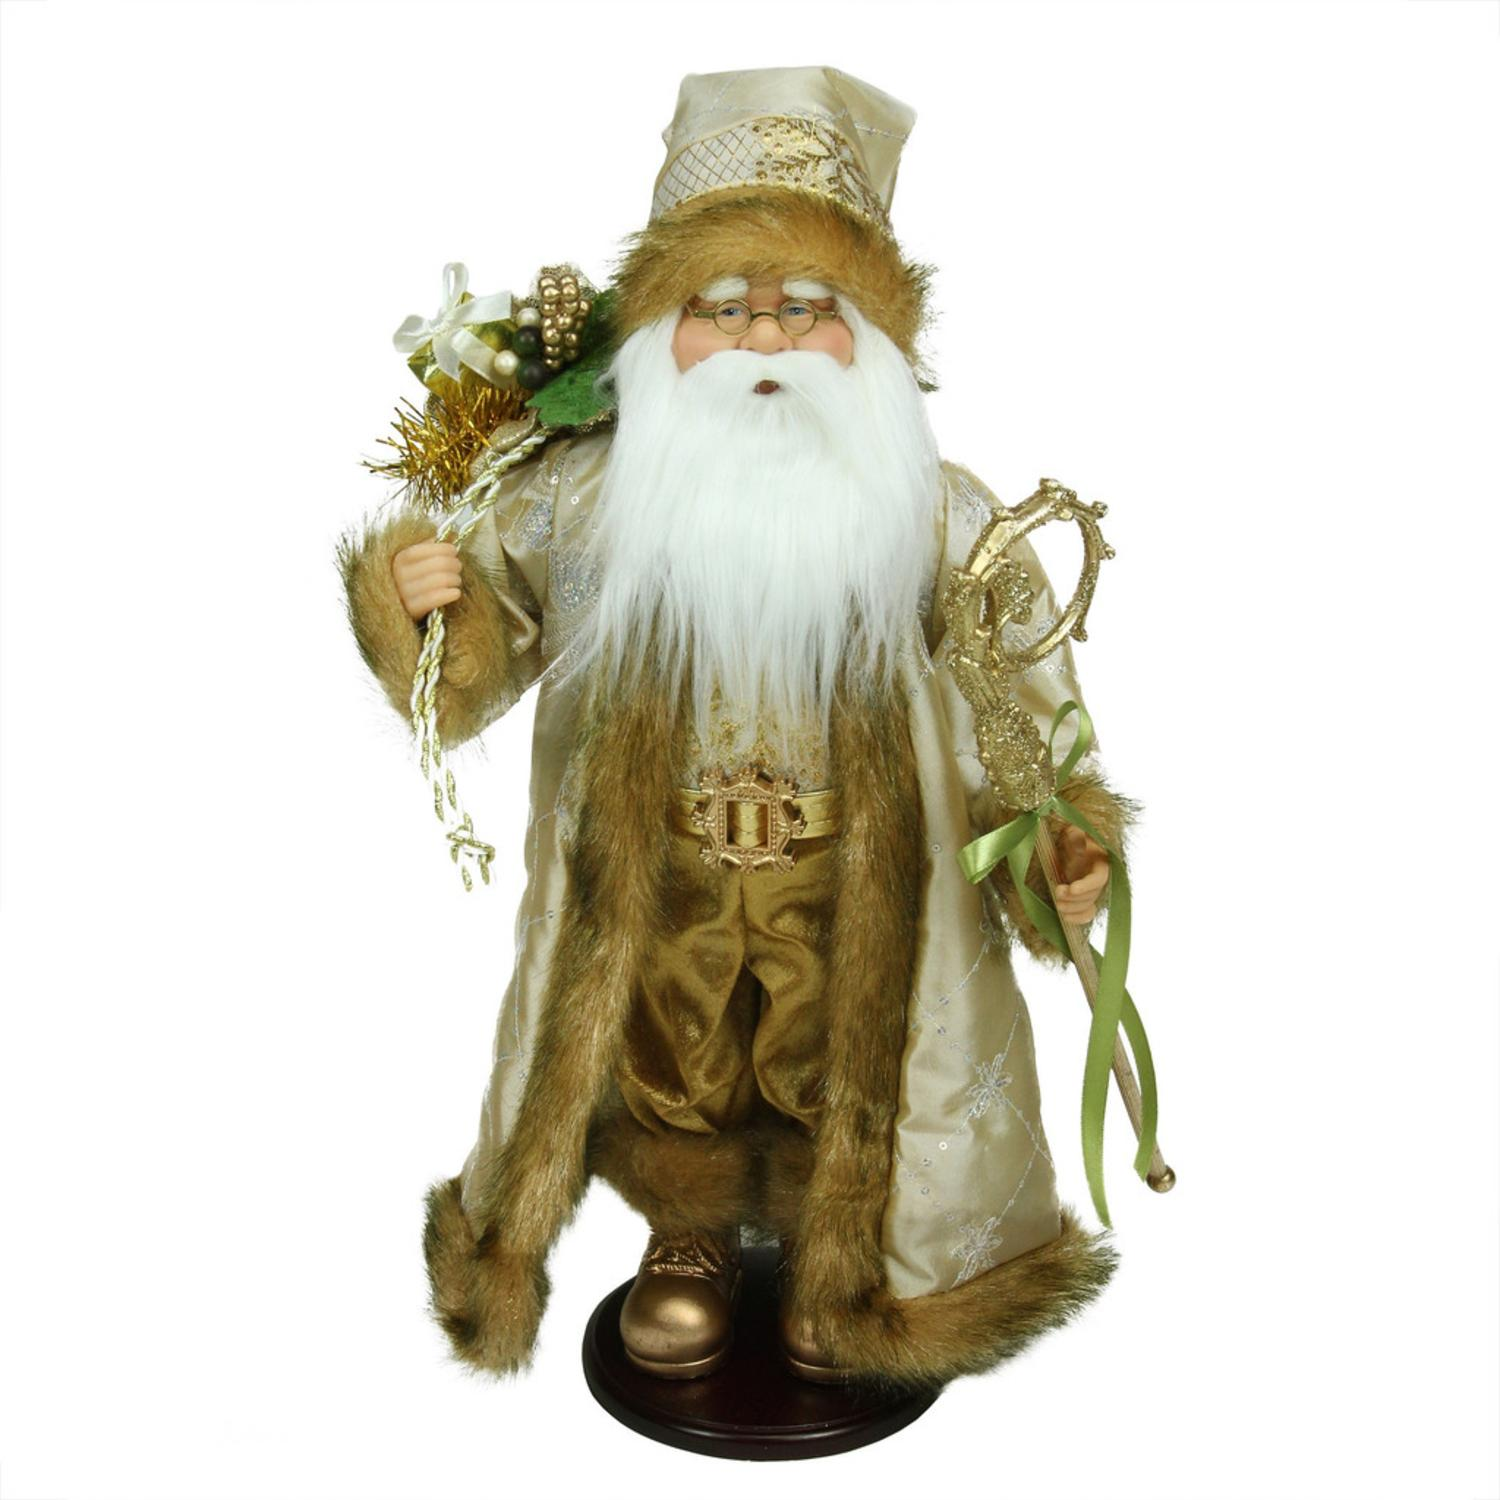 ''18.25'''' Winter Light Santa Claus with Jacquard JACKET Christmas Decoration''